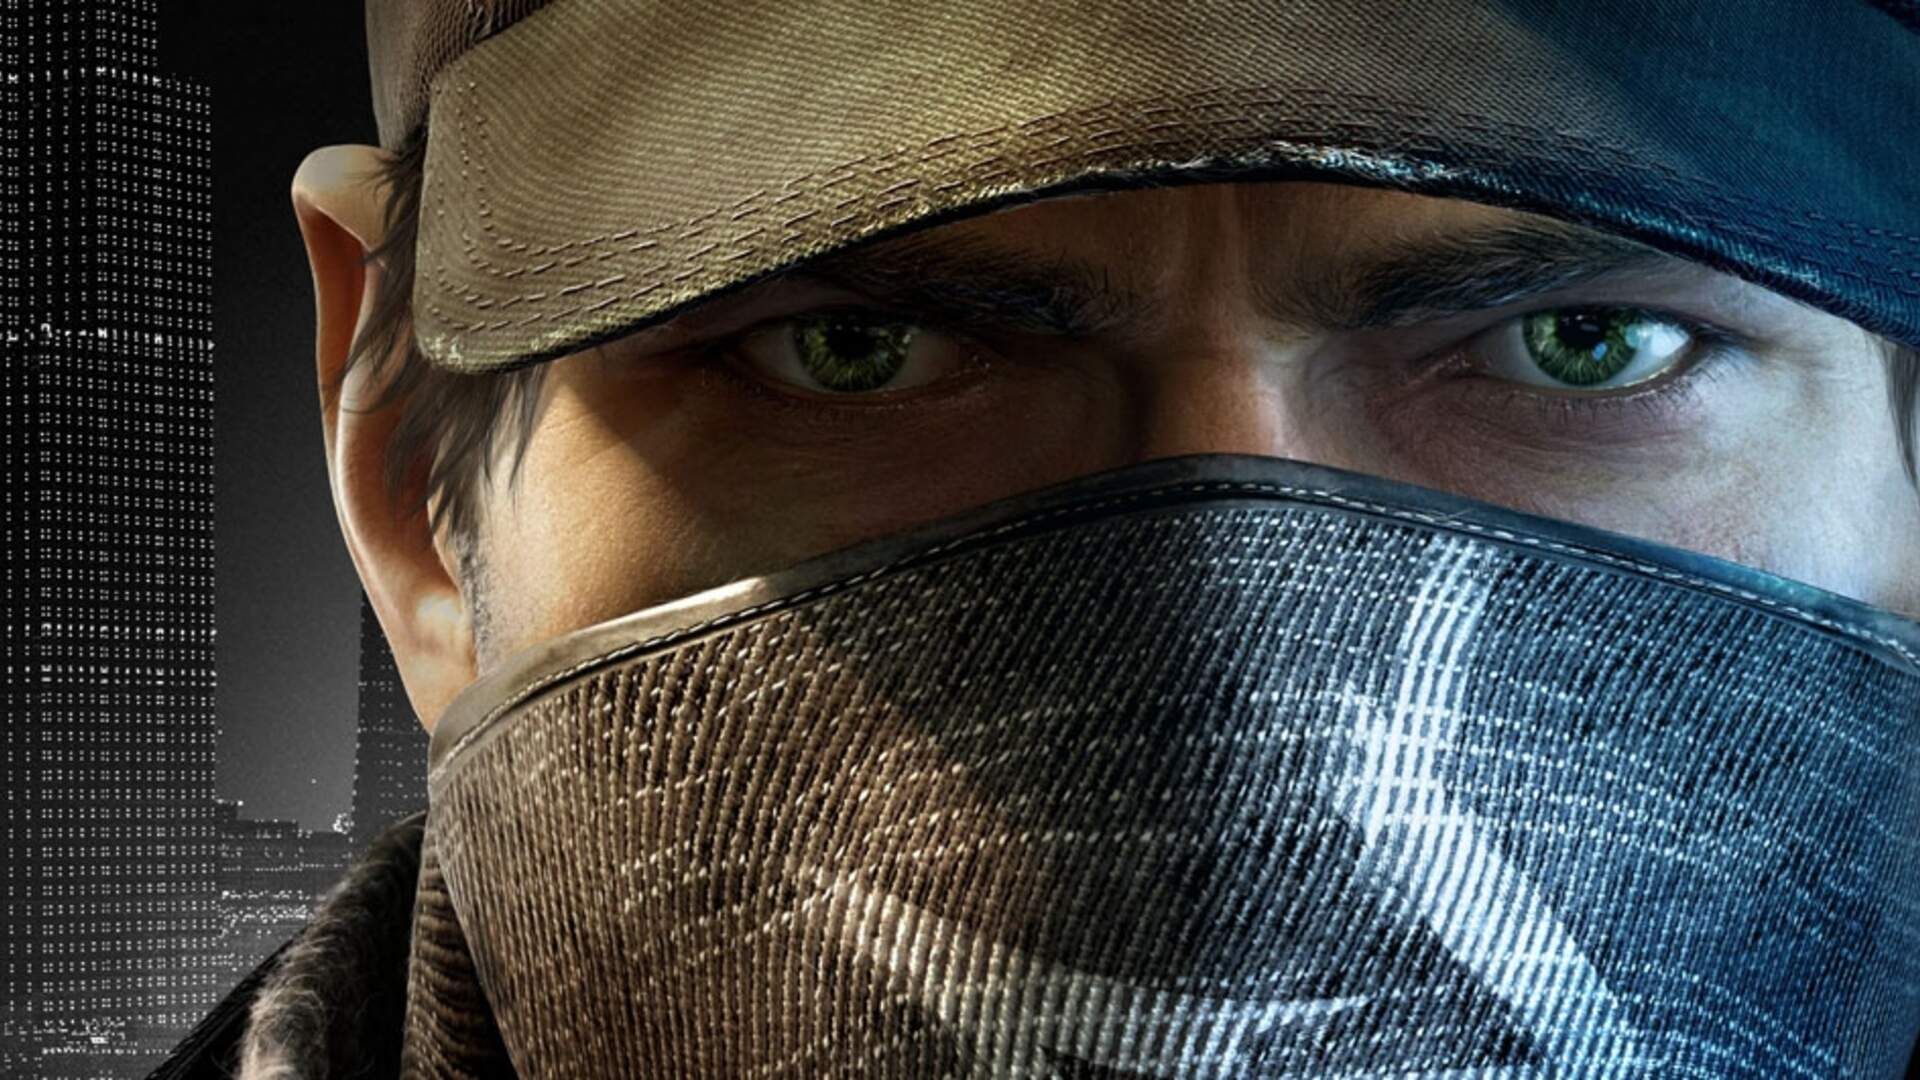 Watch Dogs' Season Pass Features a New Playable Character